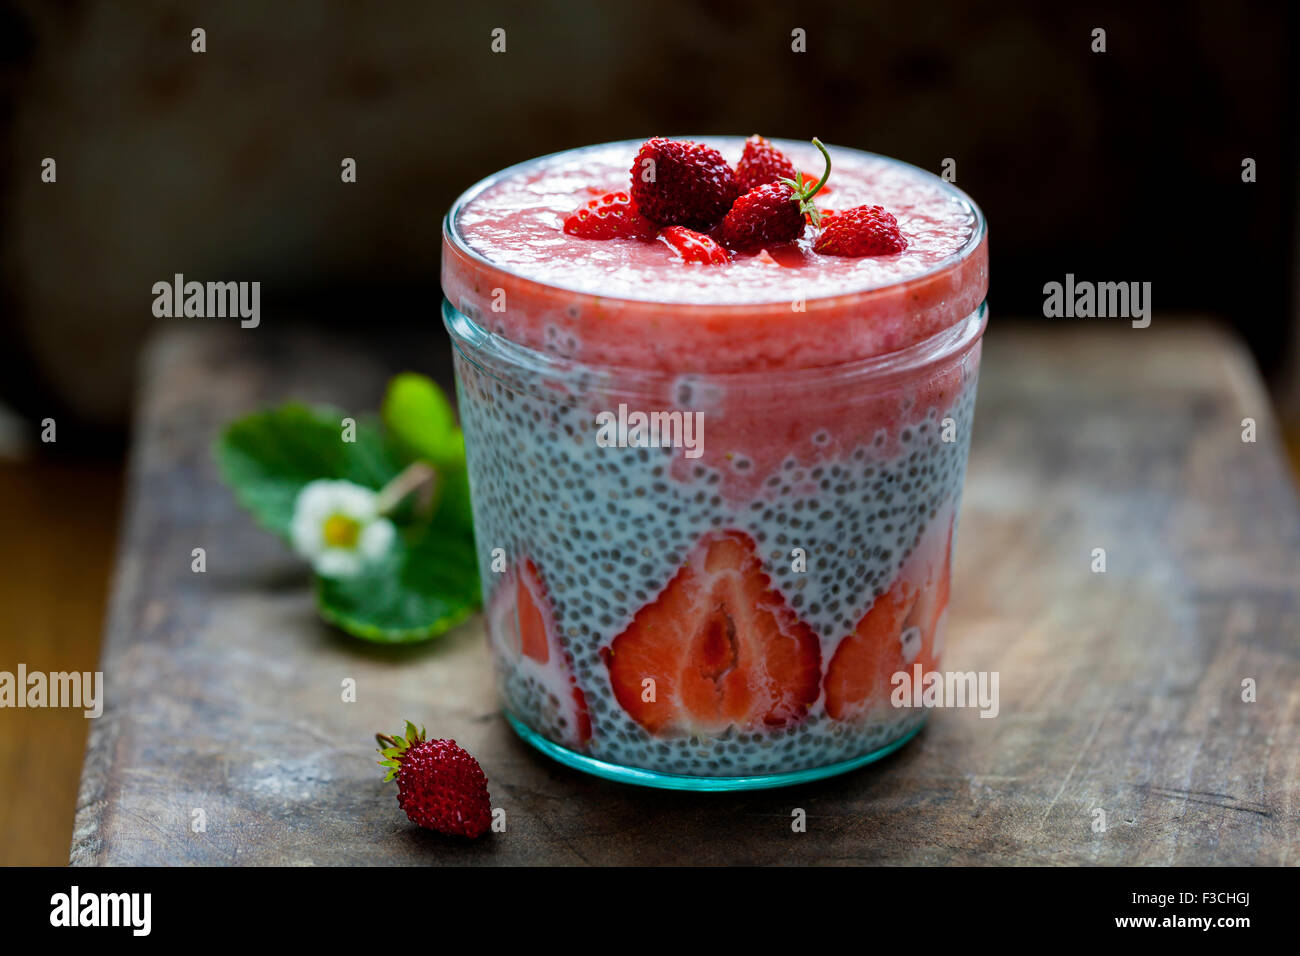 Strawberry smoothie with chia seeds pudding - Stock Image